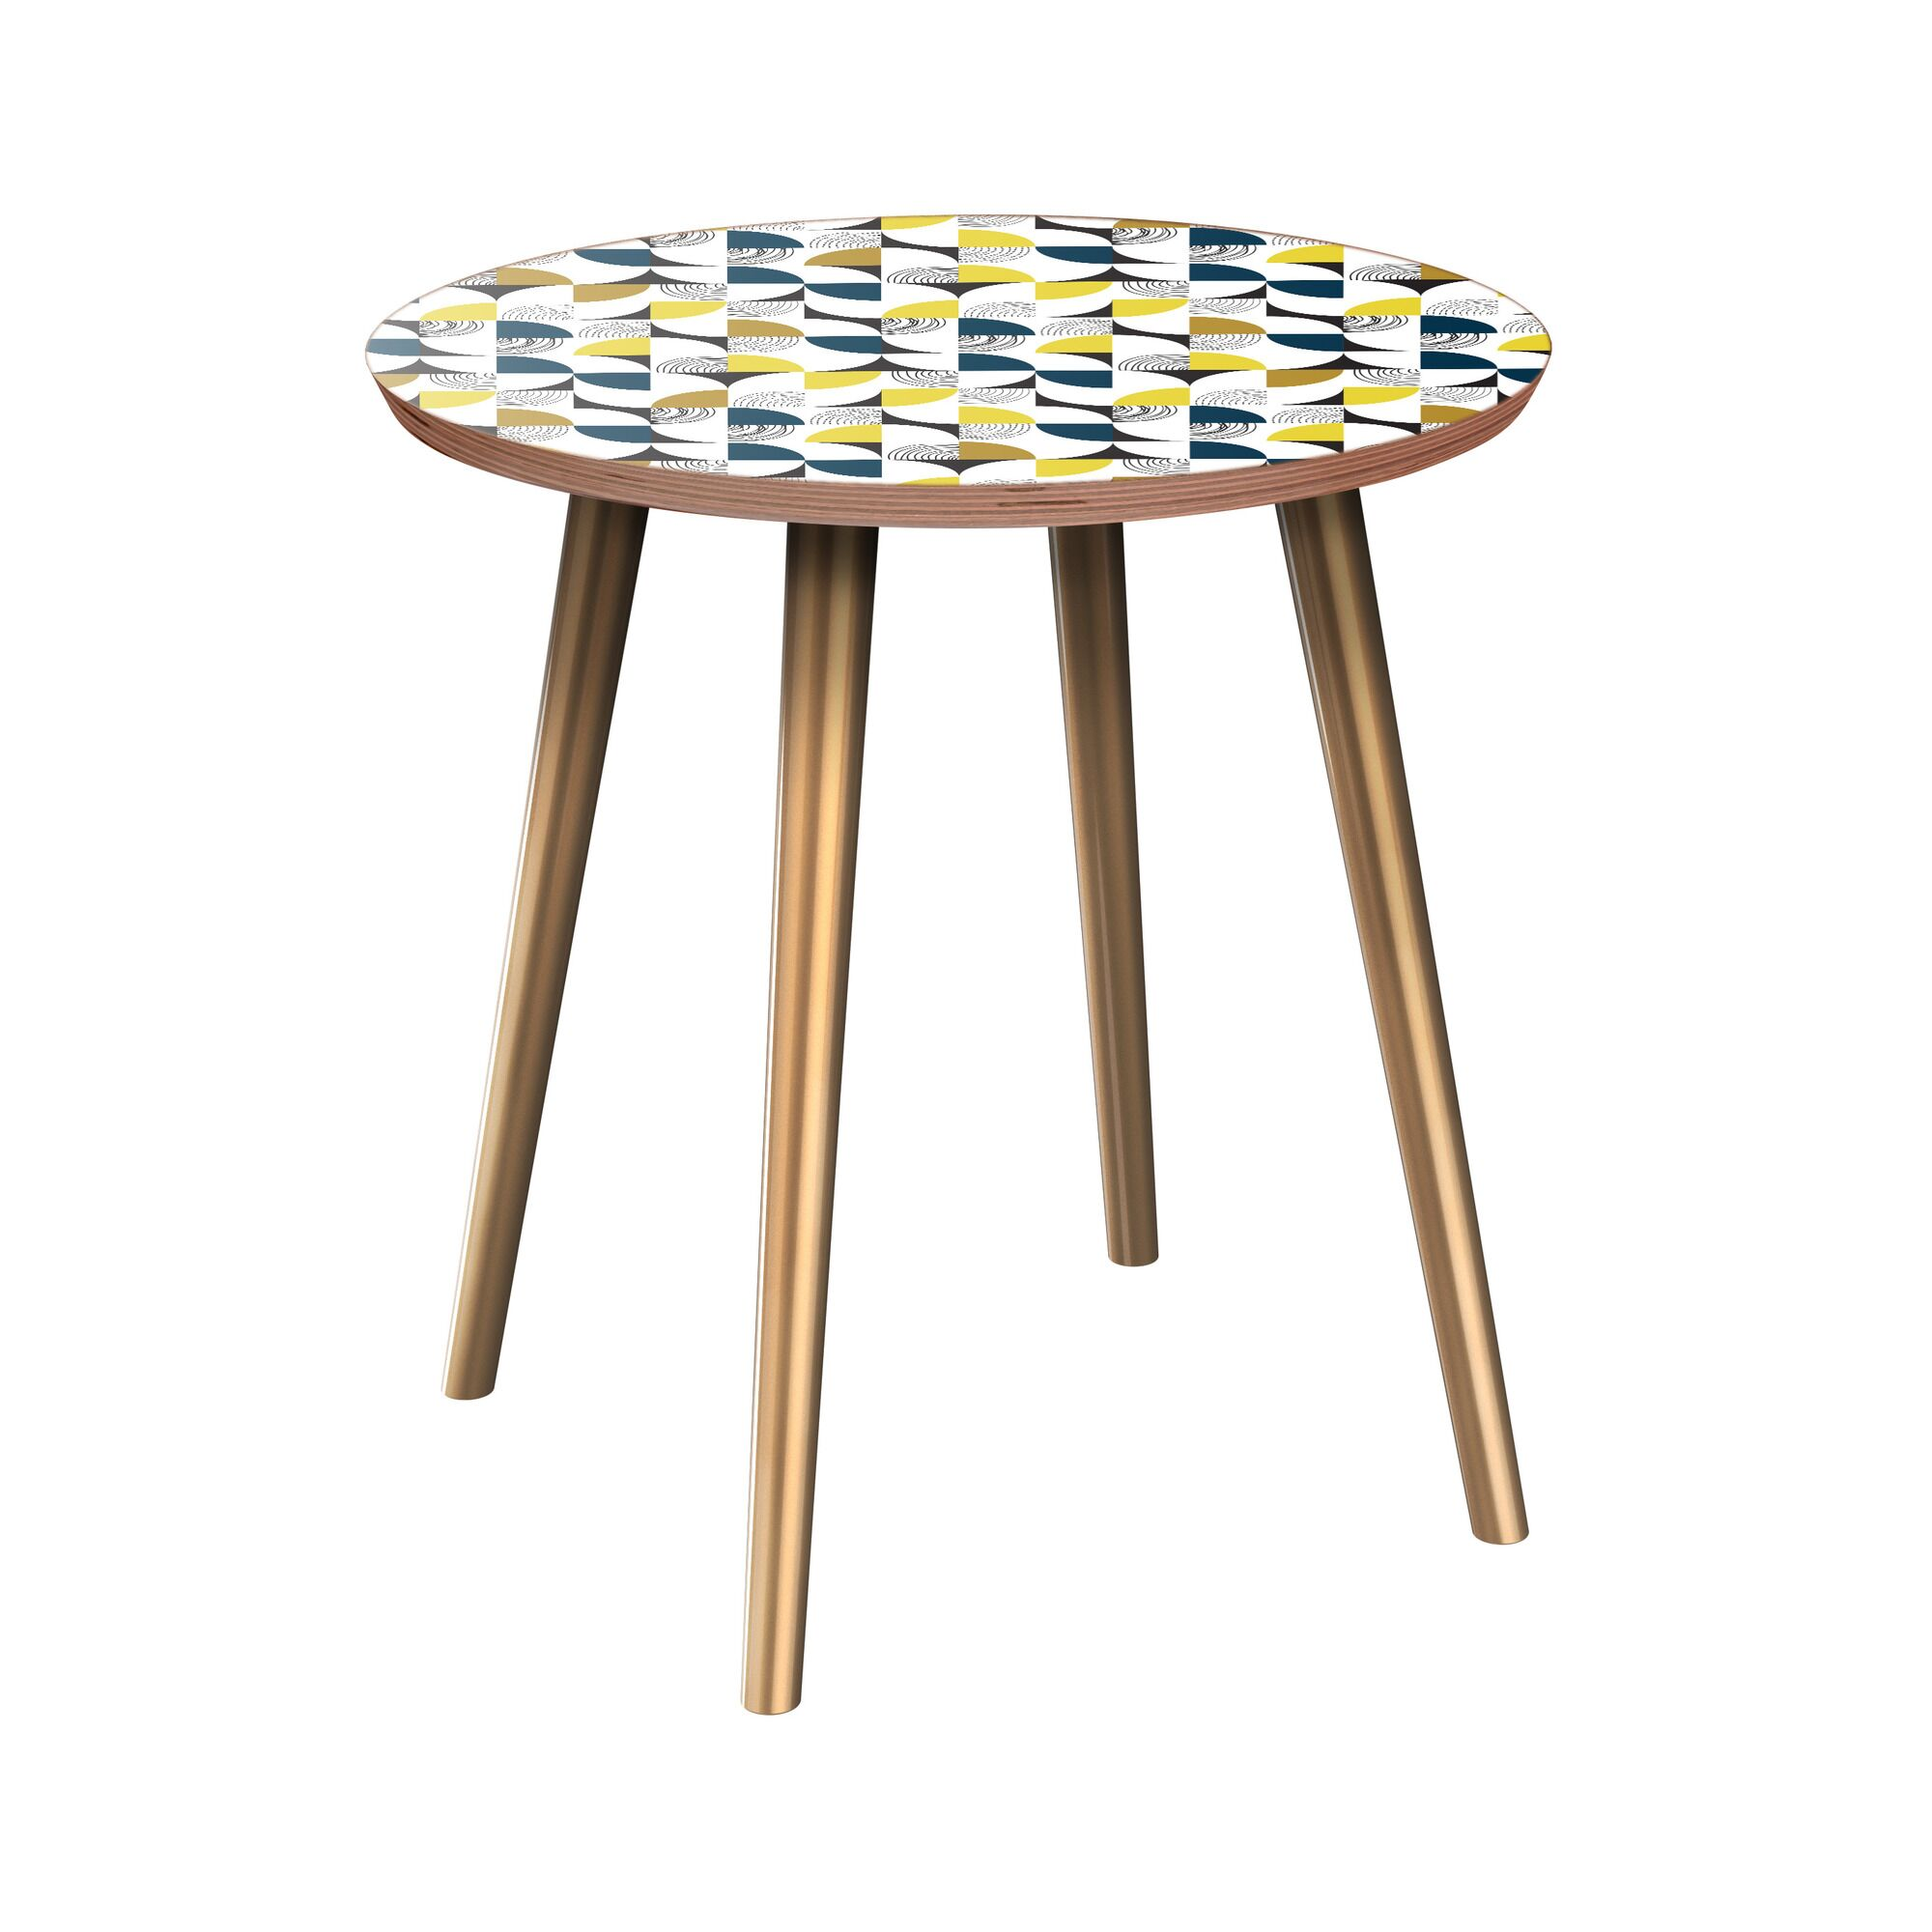 Juba End Table Table Base Color: Brass, Table Top Color: Walnut